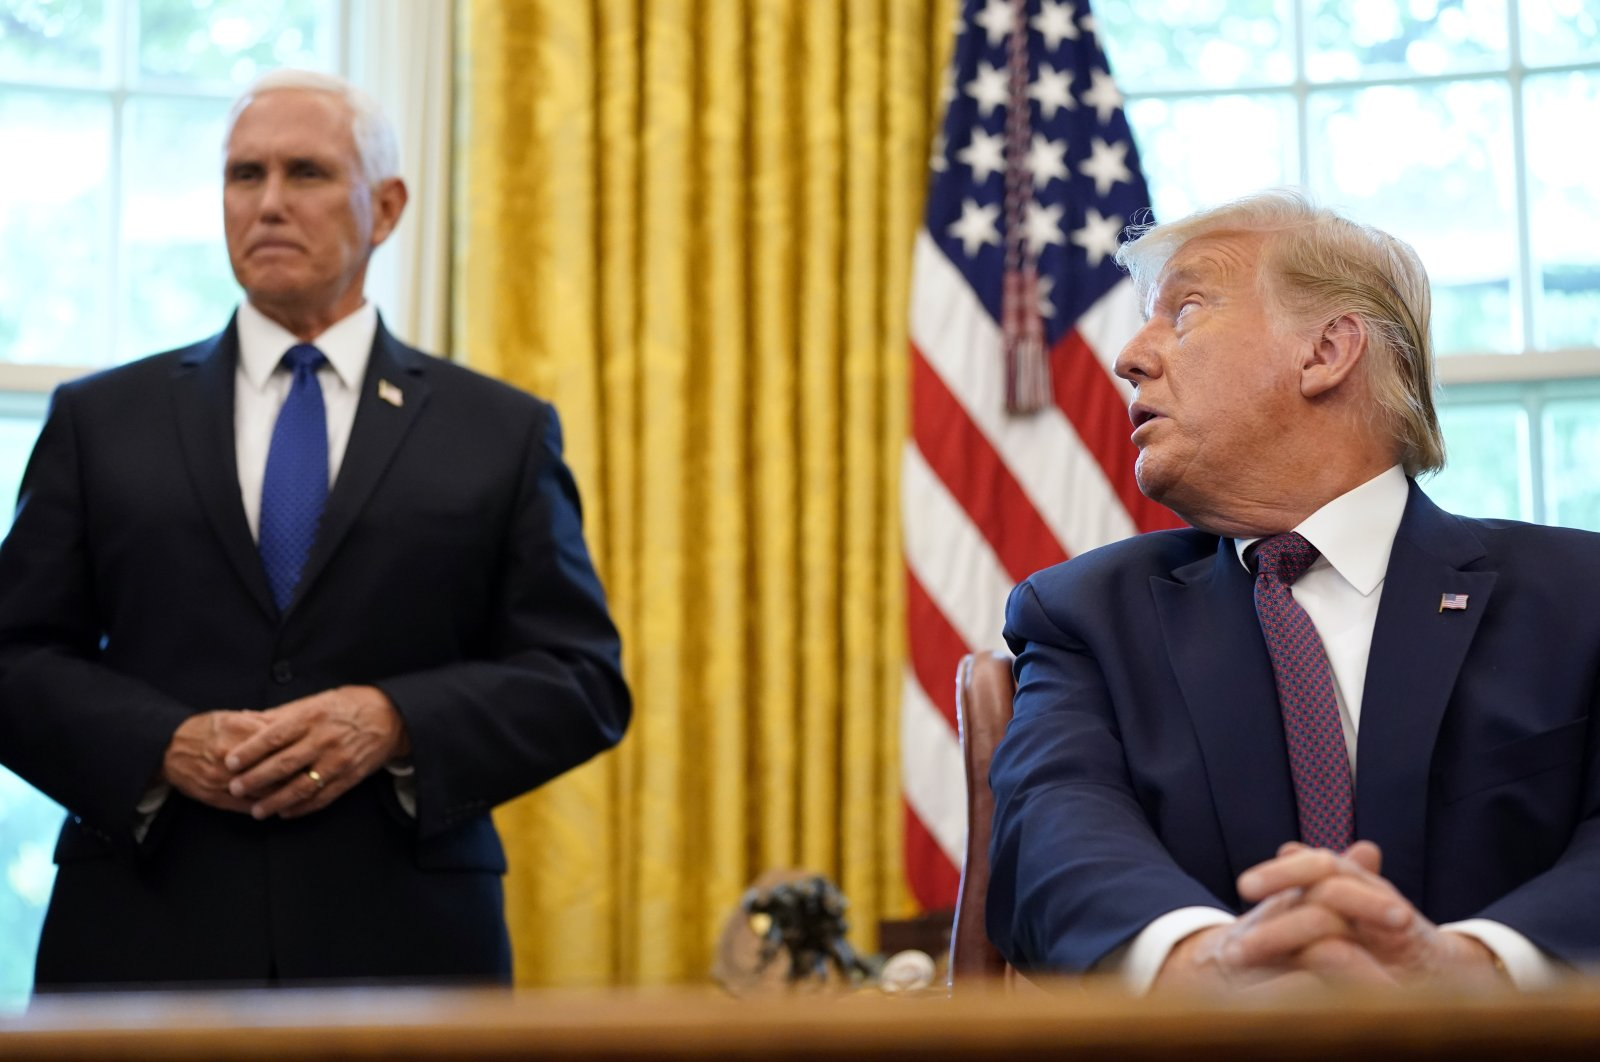 U.S. President Donald Trump looks toward Vice President Mike Pence in the Oval Office of the White House, Washington, D.C., Sept. 11, 2020. (AP Photo)